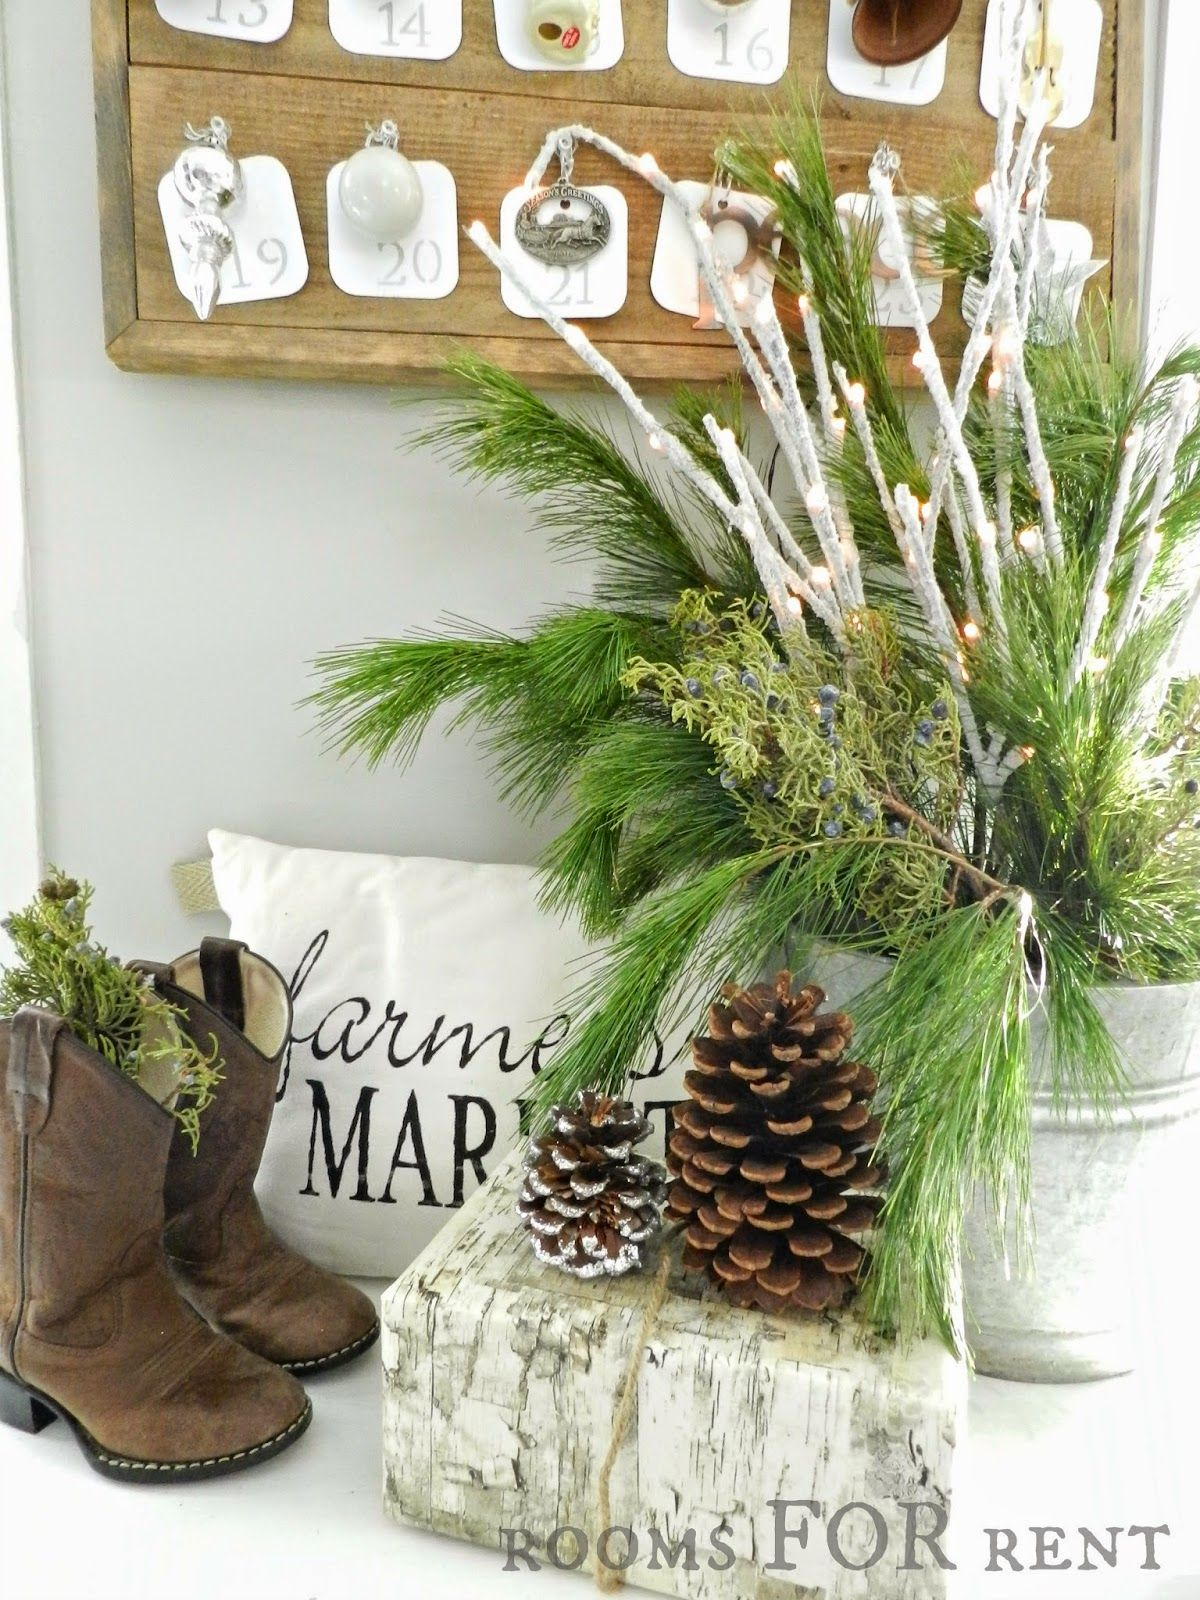 Wood Planked Advent Calendar Rooms for rent, Farmhouse